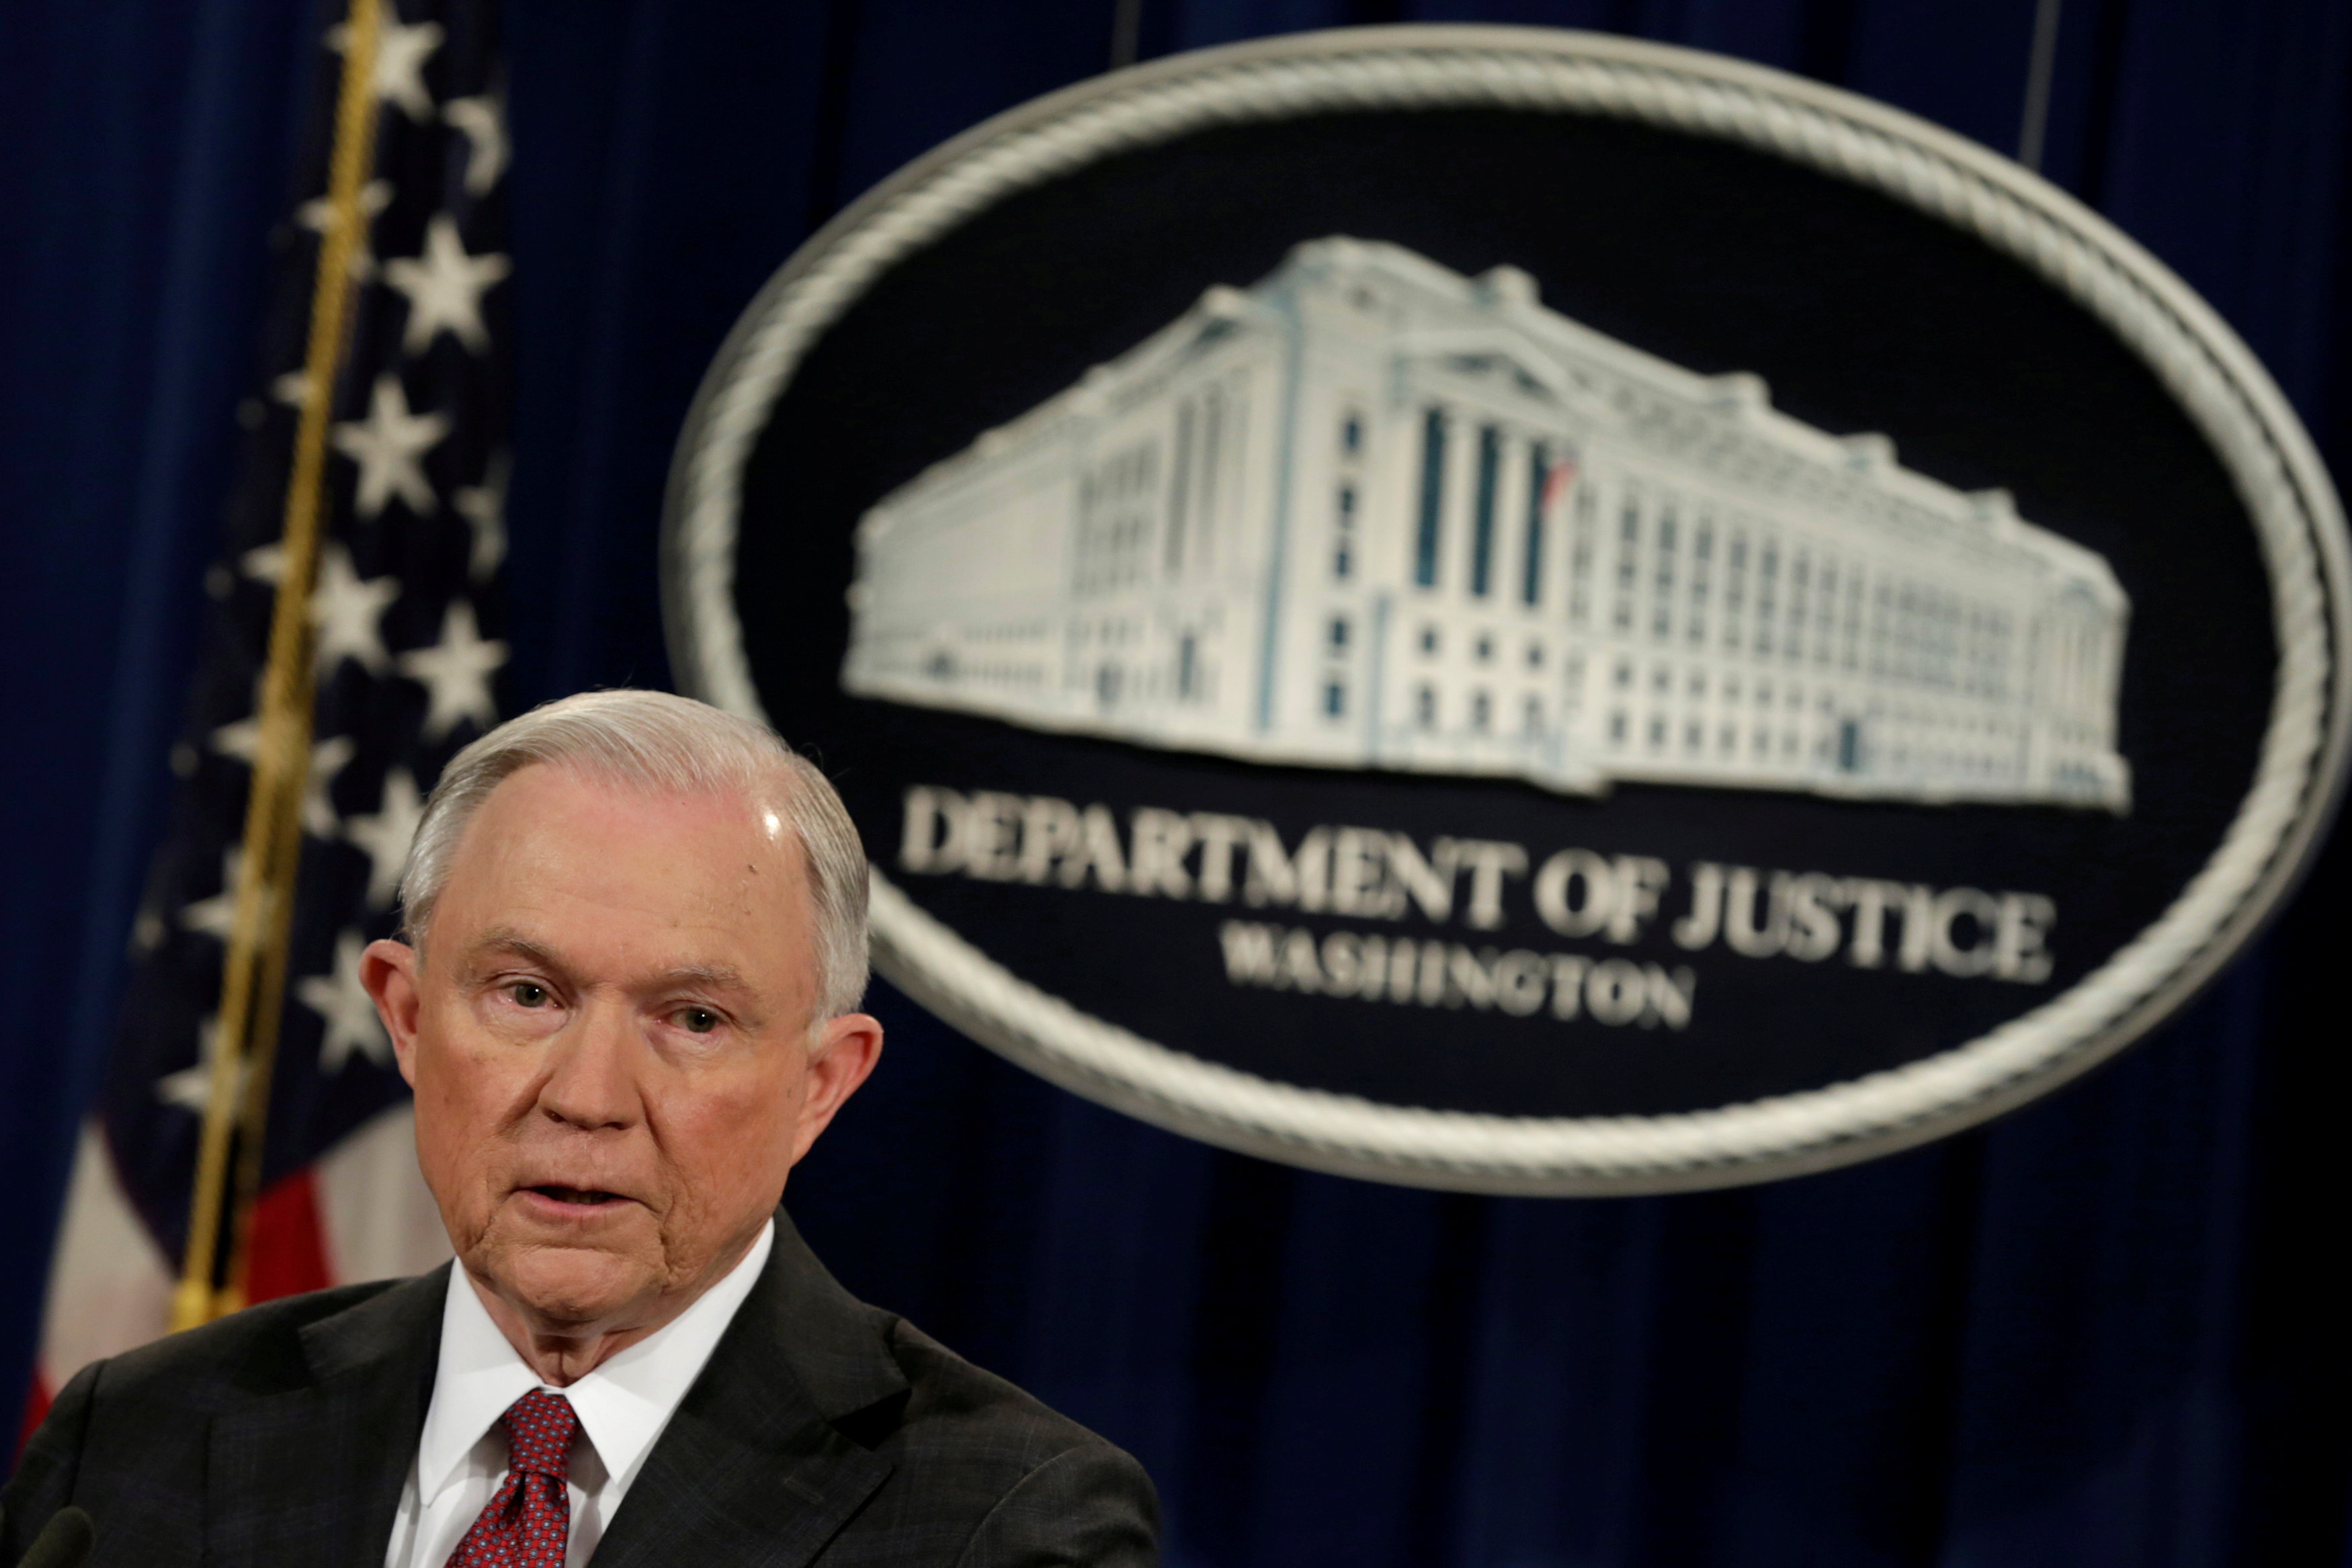 FILE PHOTO: U.S. Attorney General Jeff Sessions speaks at a news conference at the Justice Department in Washington, U.S., March 2, 2017. REUTERS/Yuri Gripas/File Photo